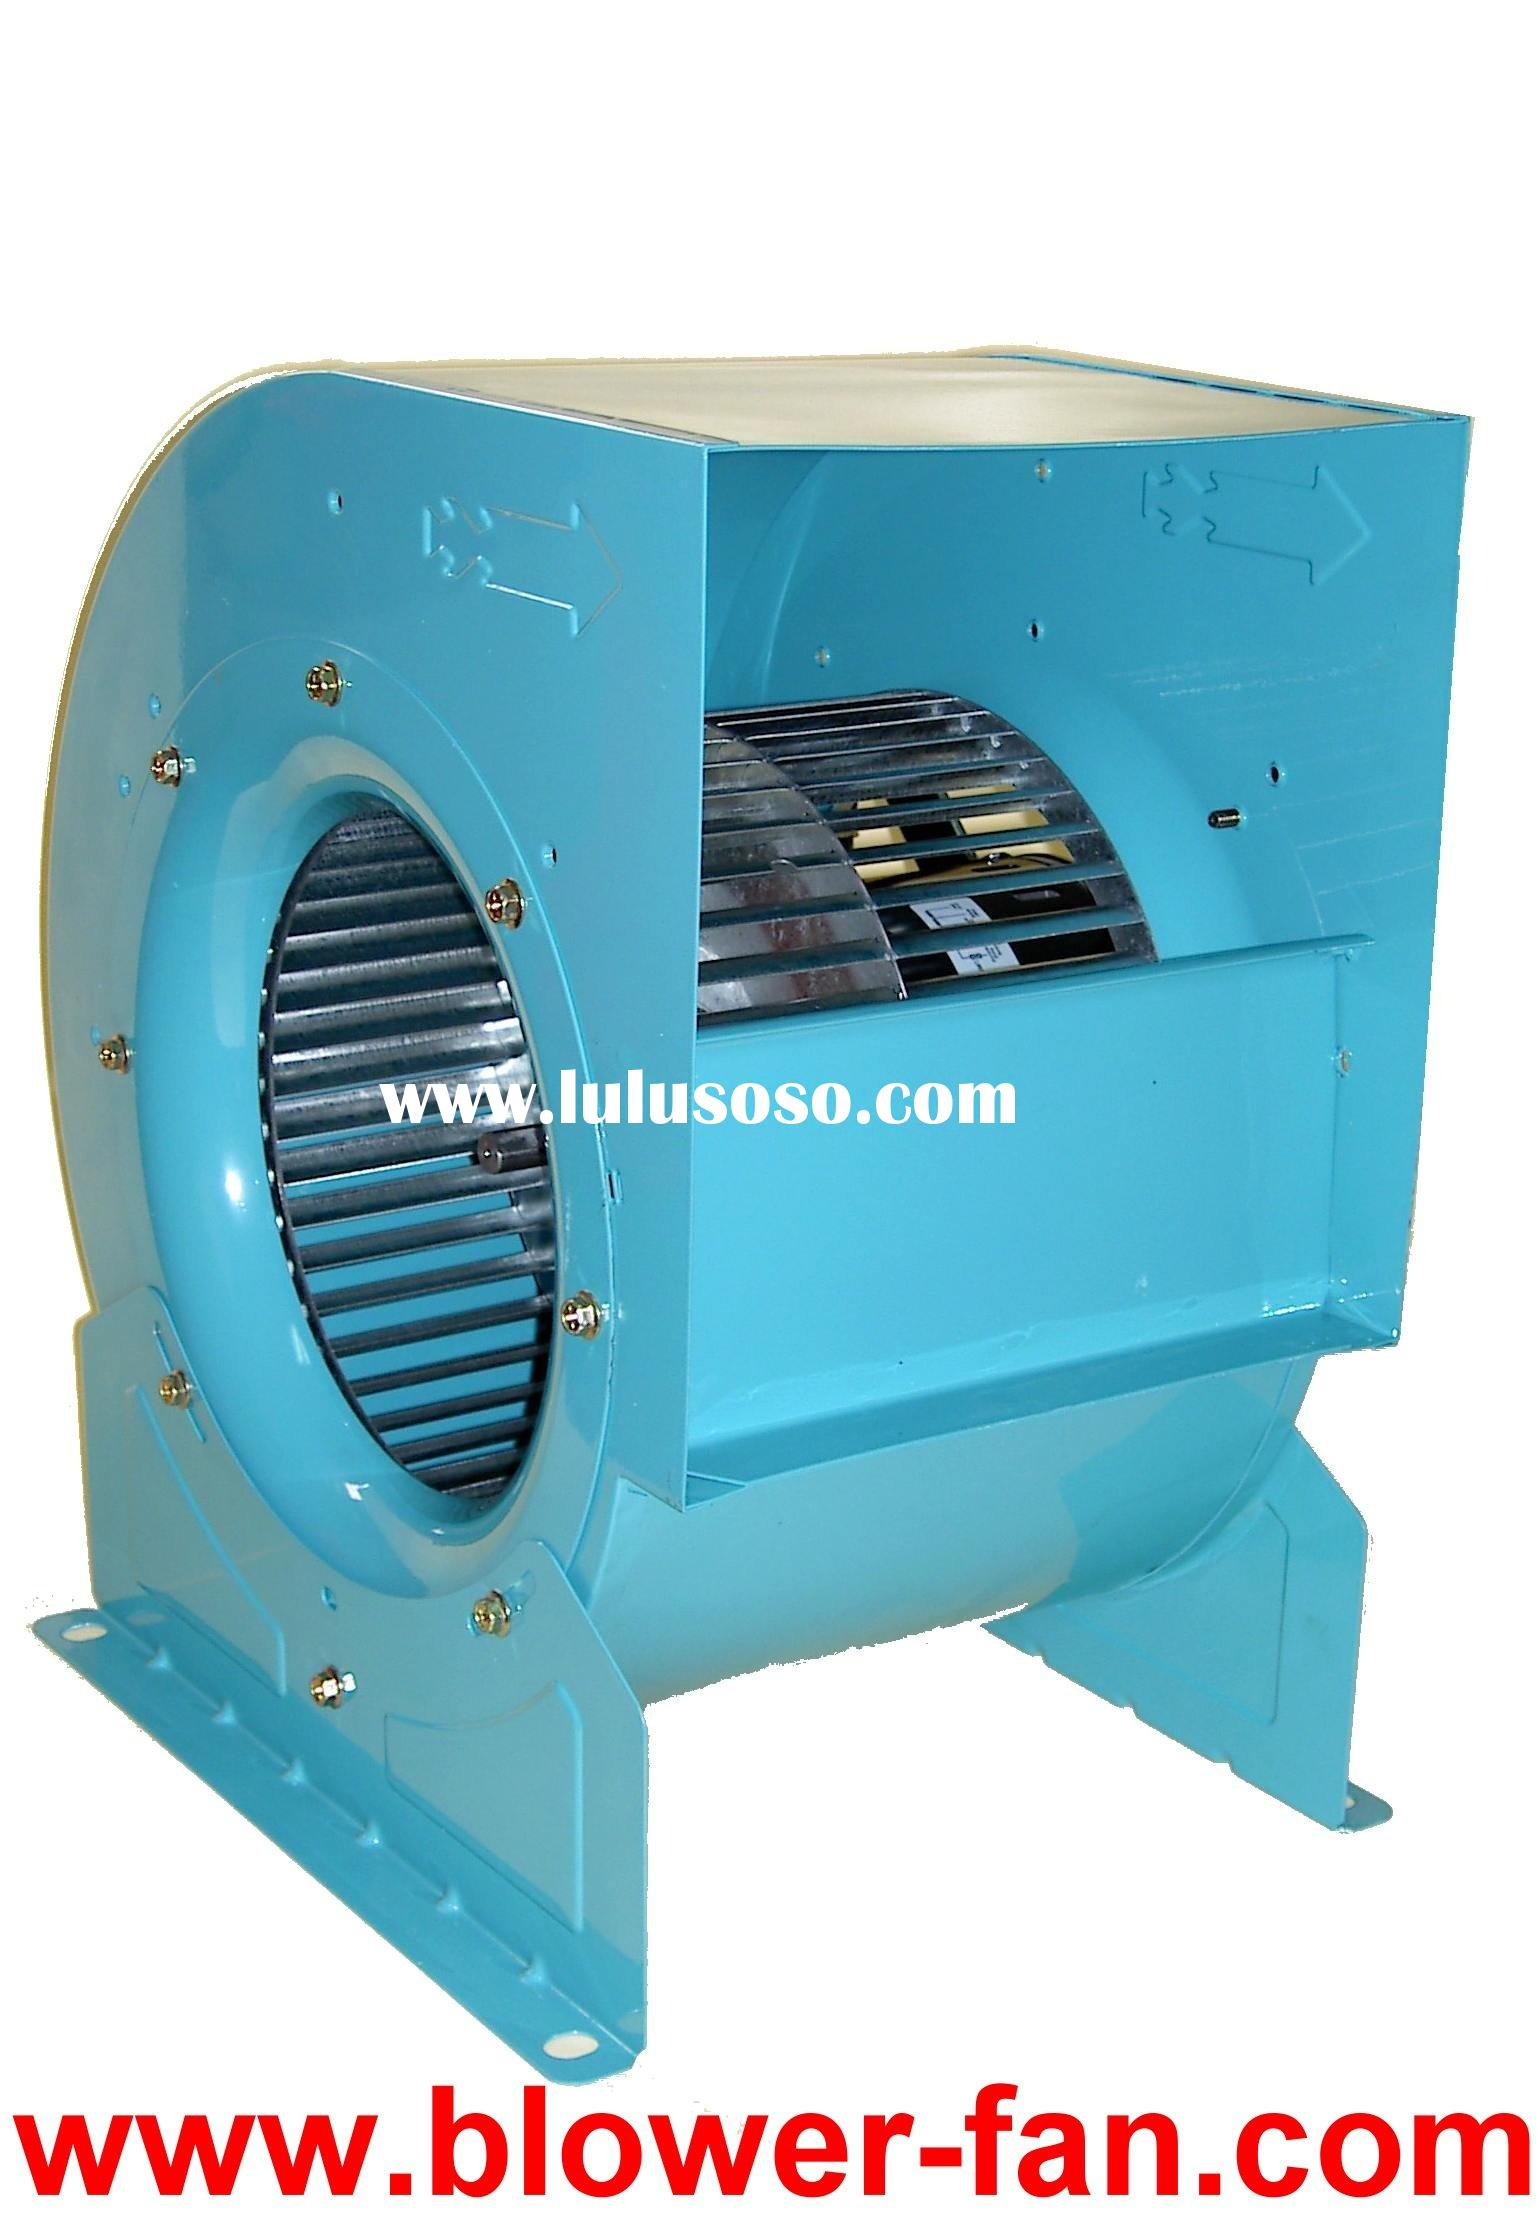 Centrifugal Blower And Blower Wheel-Air Deviser Blowers